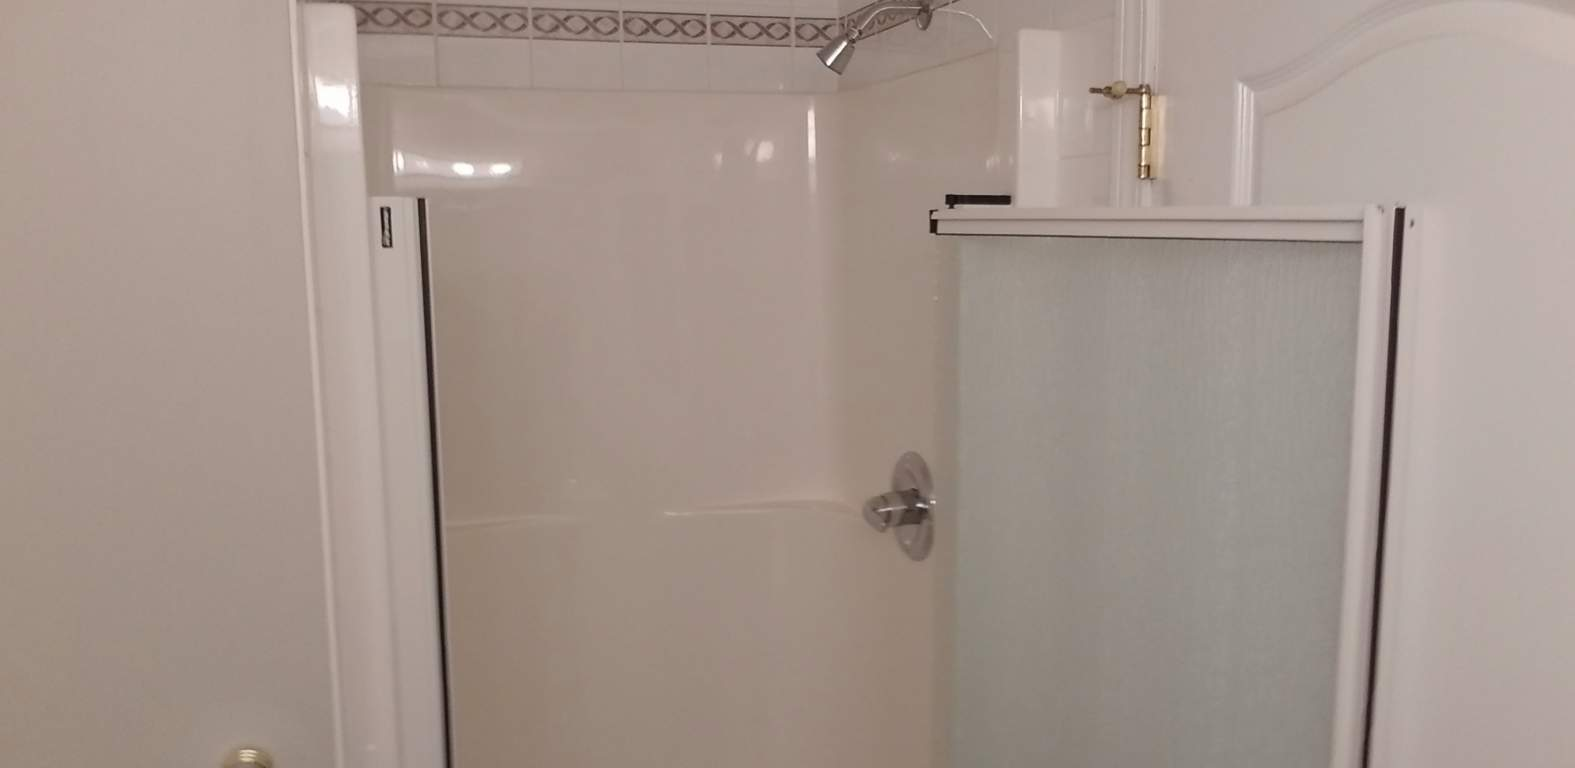 Ensuite bath includes separate shower with low step height easy access shower